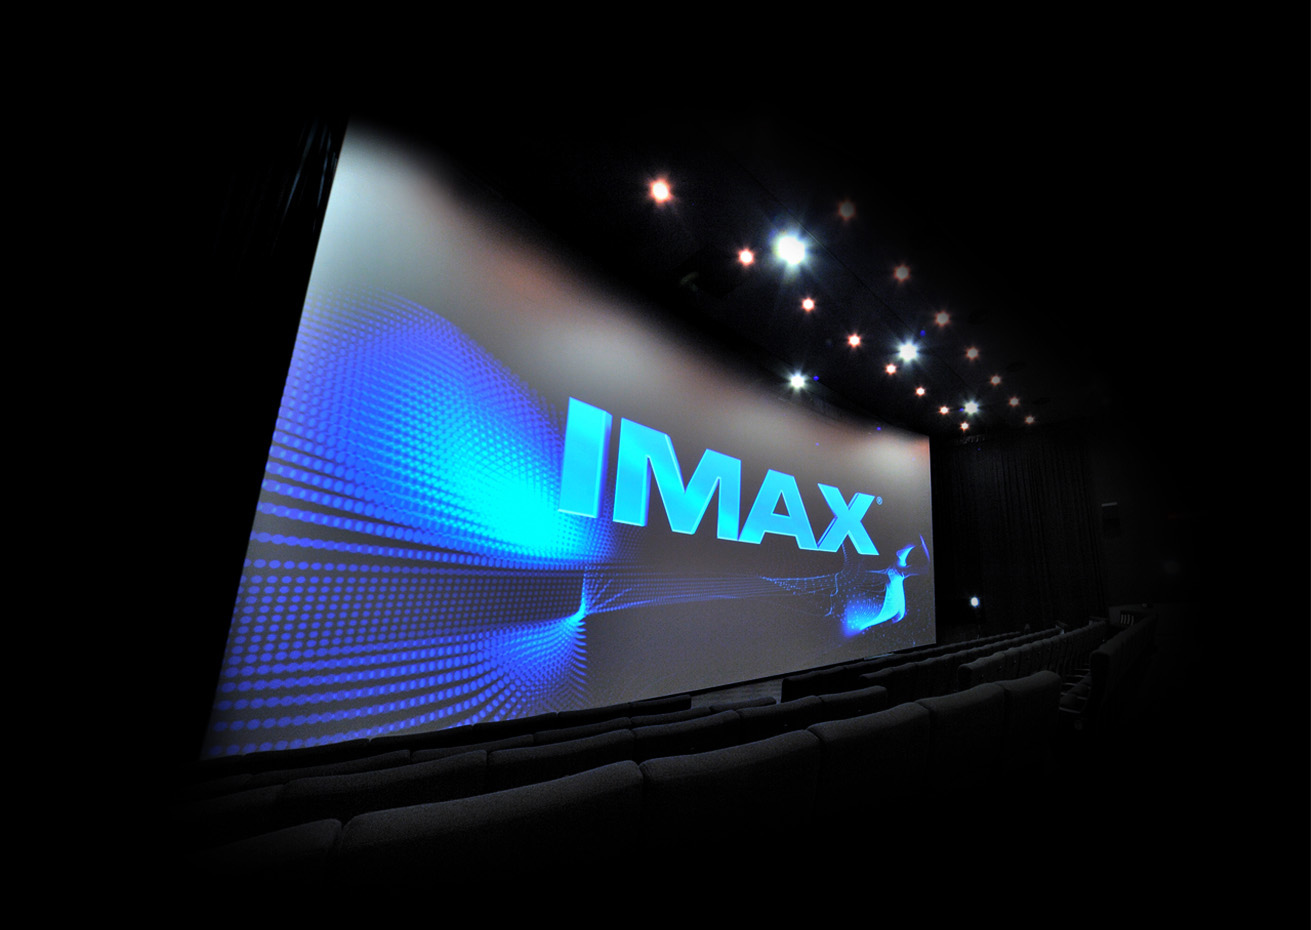 http://109cinemas.net/img/theatres/establishment/imax_109kawasaki_screen7_left.jpg